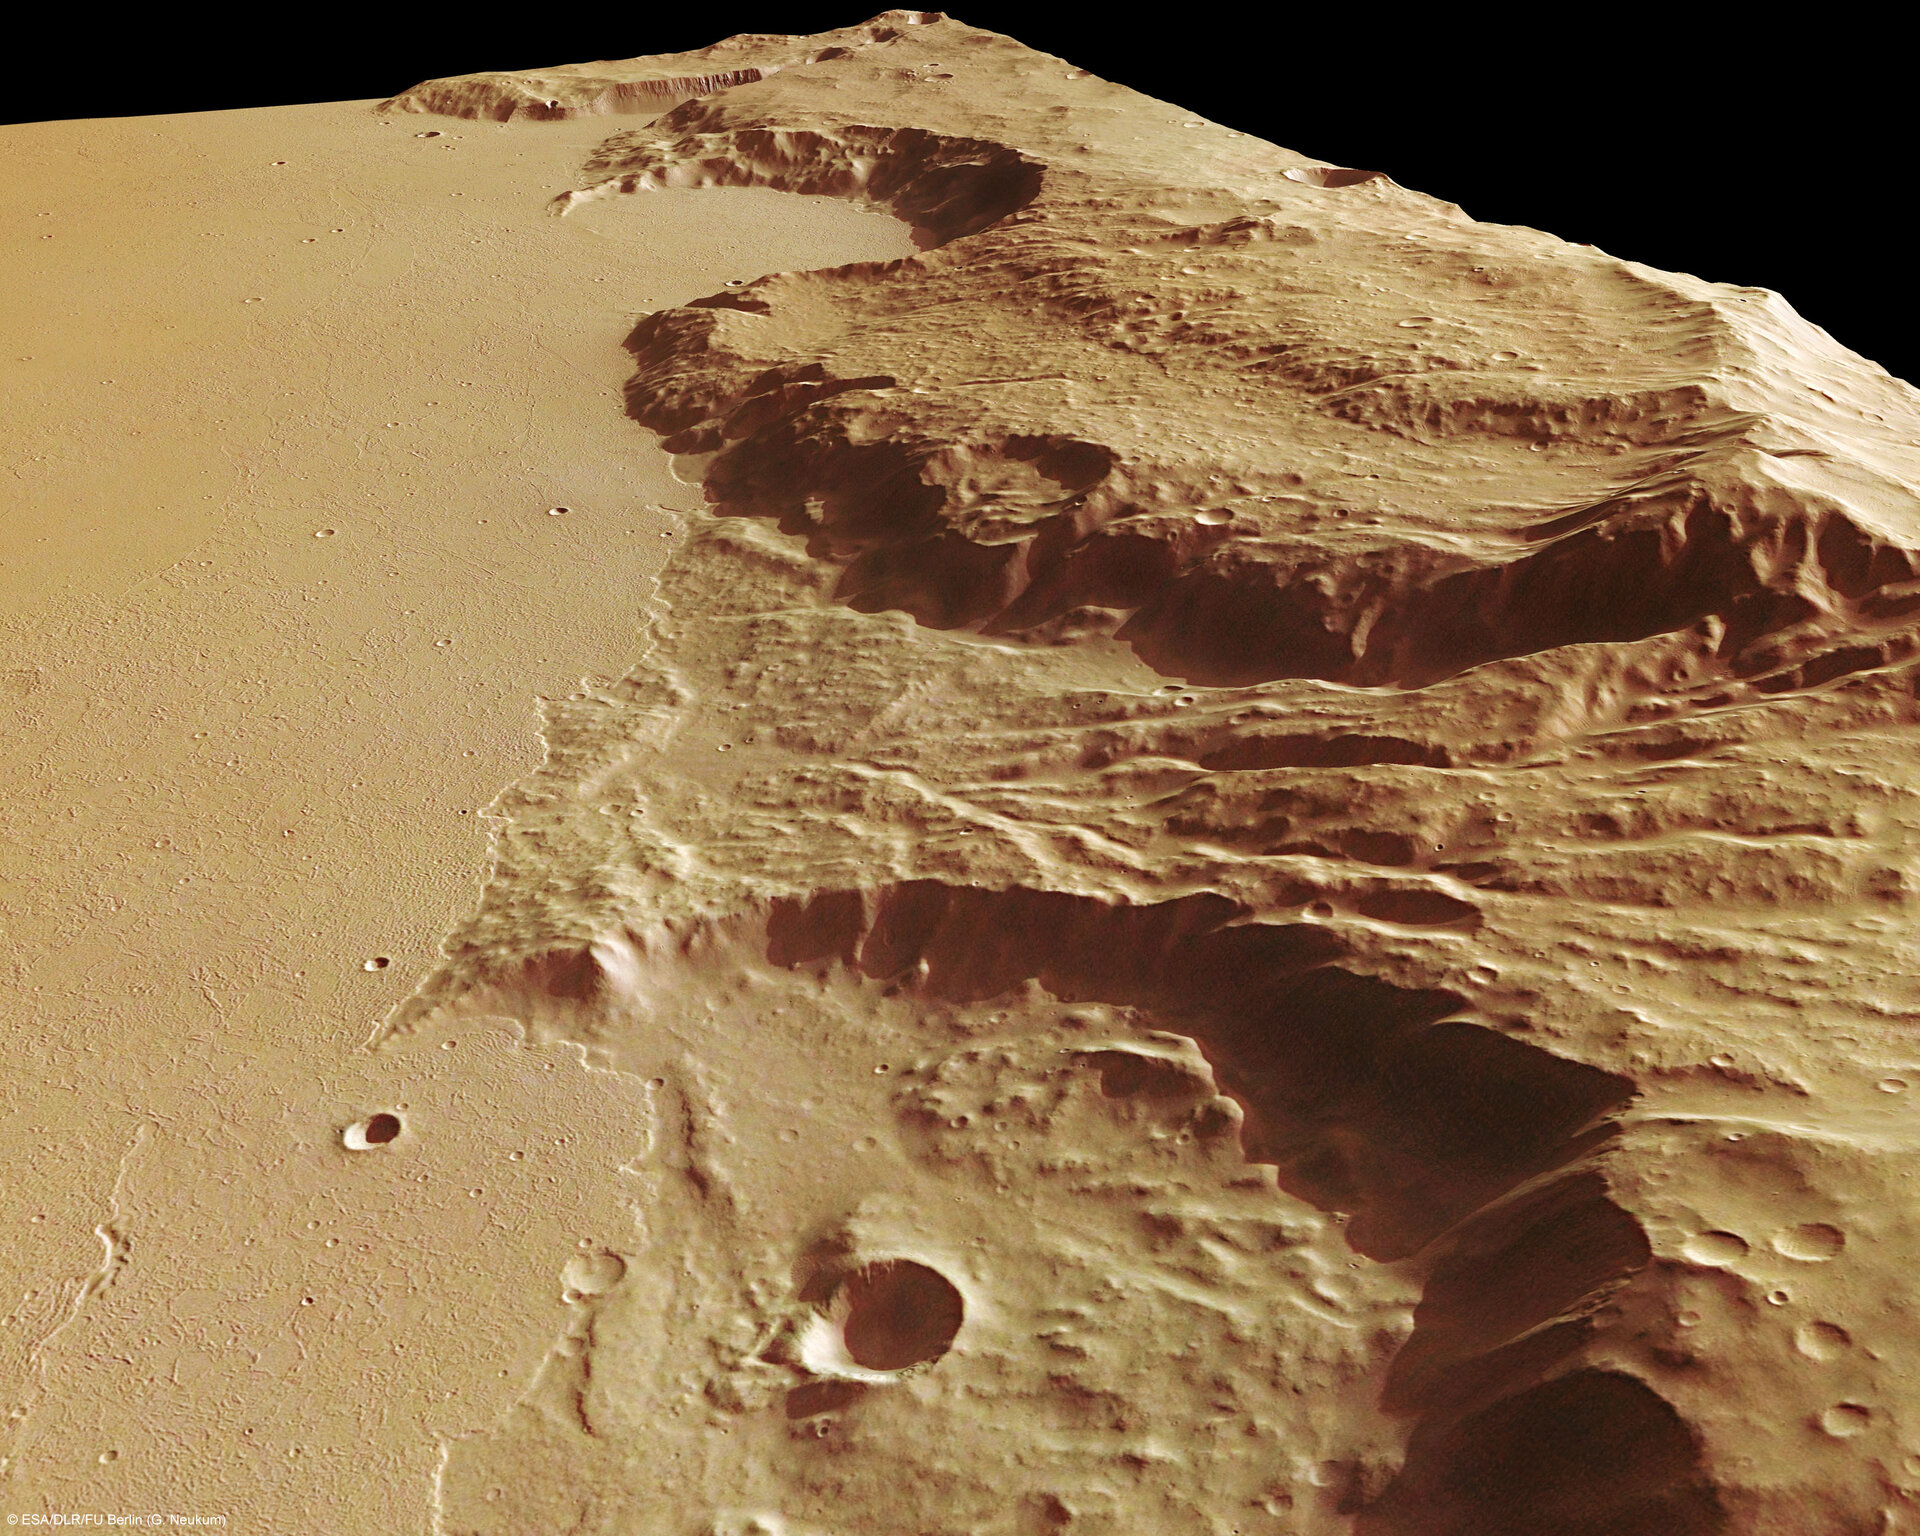 Perspective view of Mangala Fossae